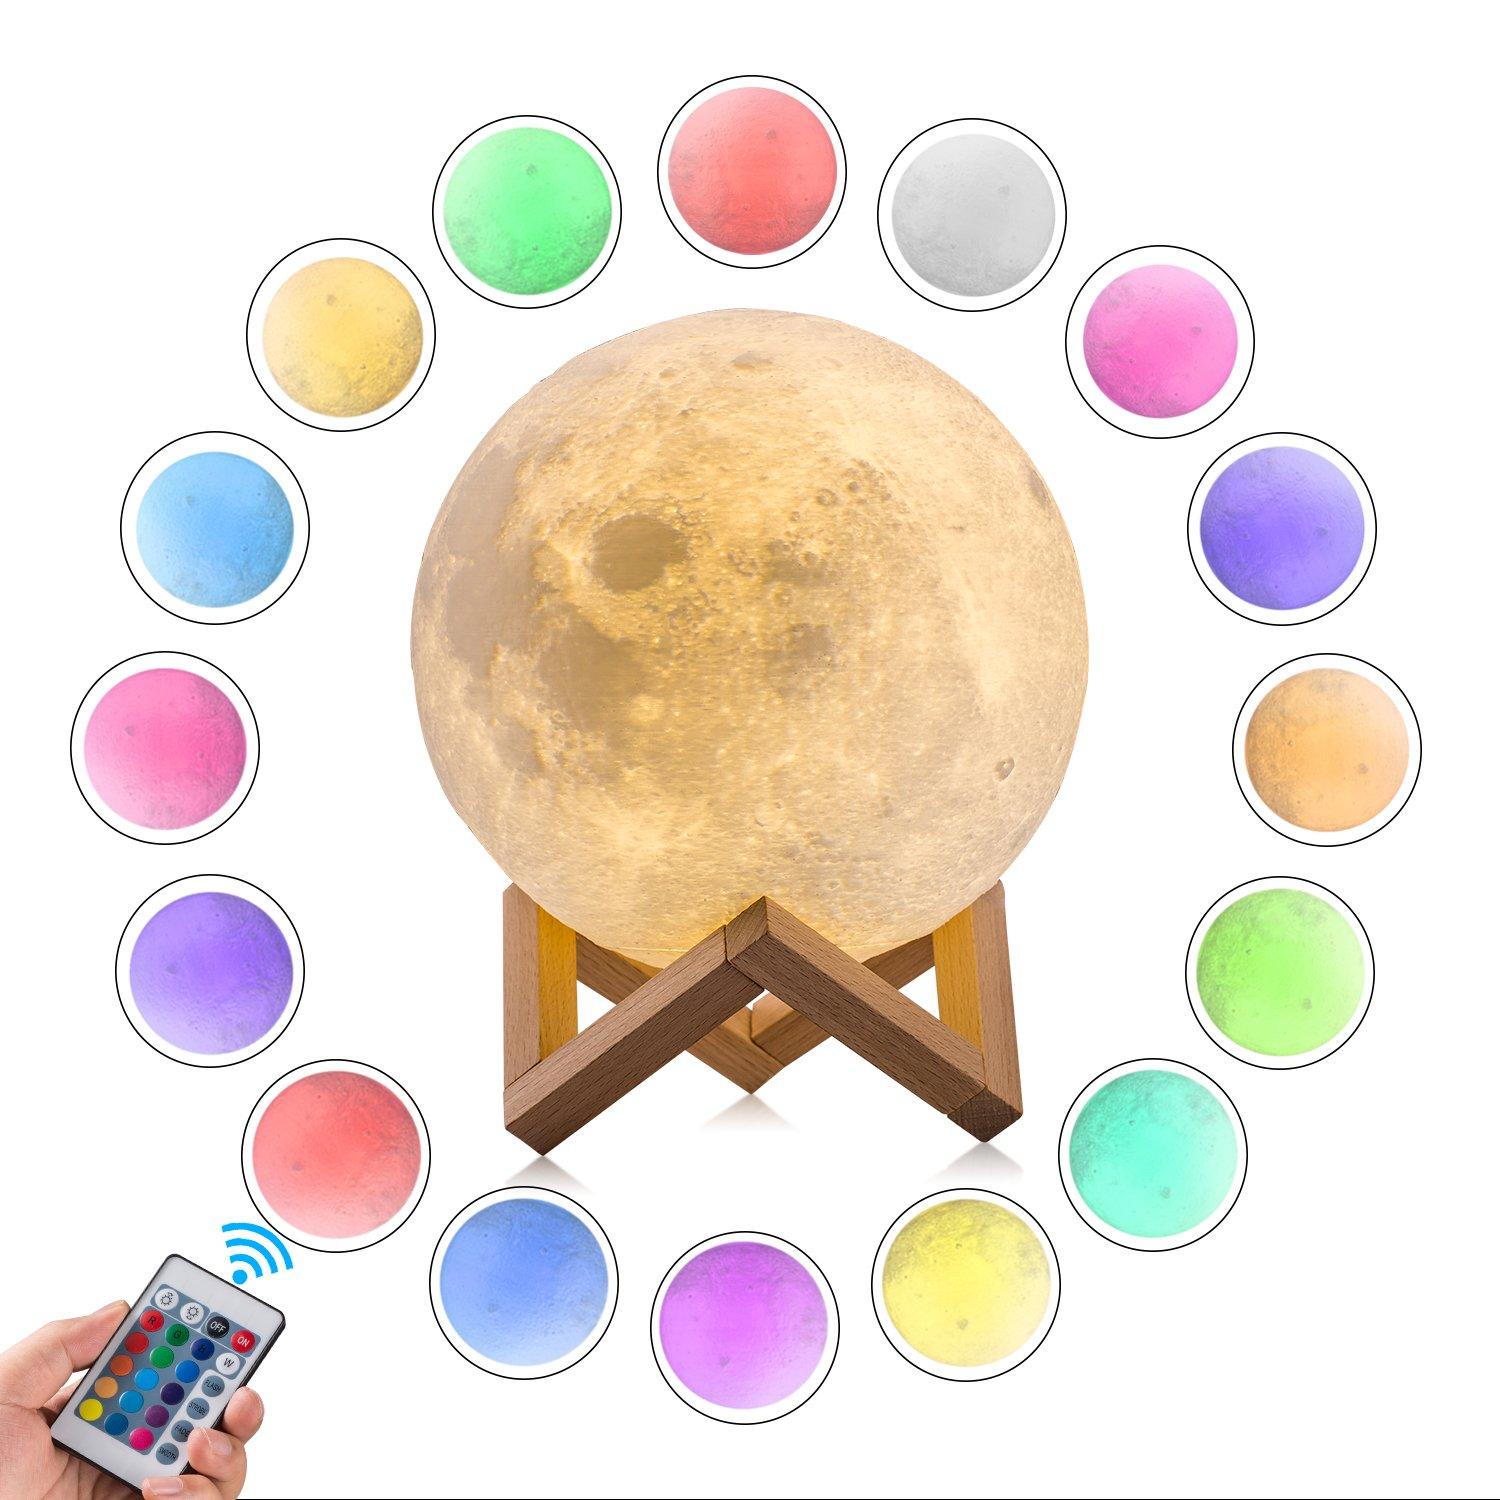 GPJOY Moon lamp, 3D printing LED 16 Colors RGB Moon night light, 2018 Newest Upgrade Moon Night Light with Remote&Touch Control and Adjustable Brightness with Wooden Stand, Diameter 5.7 Inch